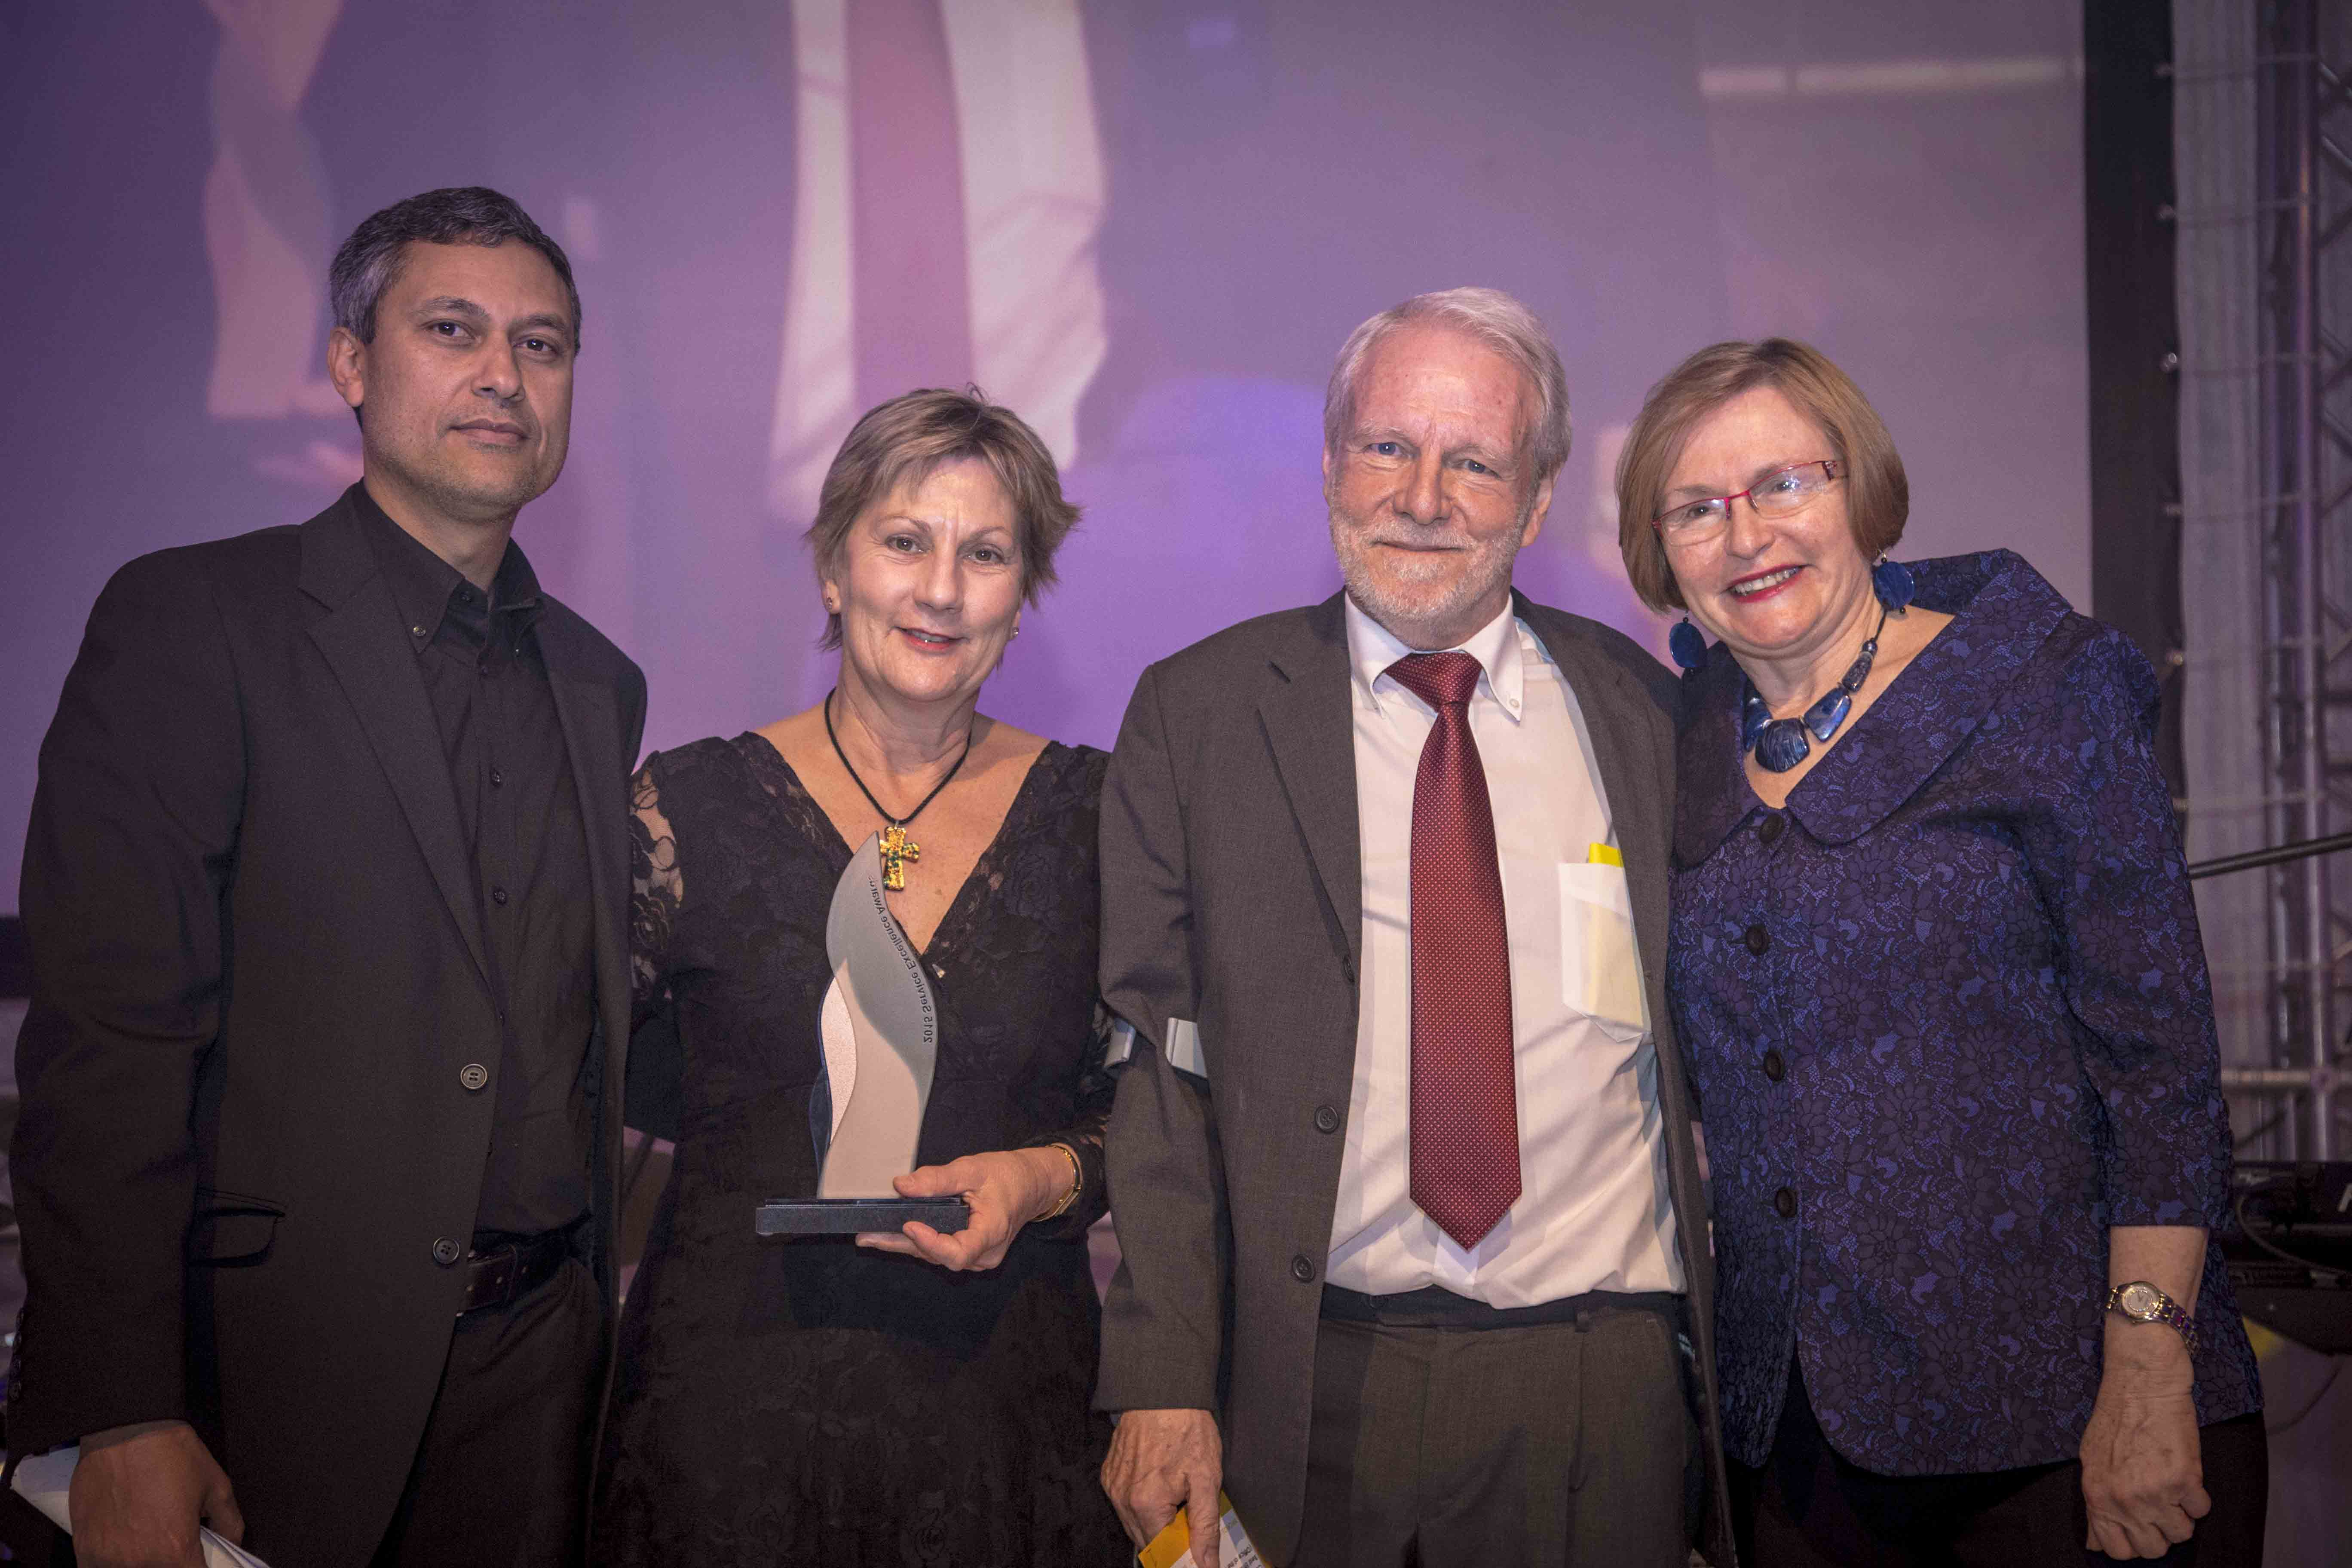 Devero Flandorp and Minister Anroux Marais accepted the award on behalf of DCAS